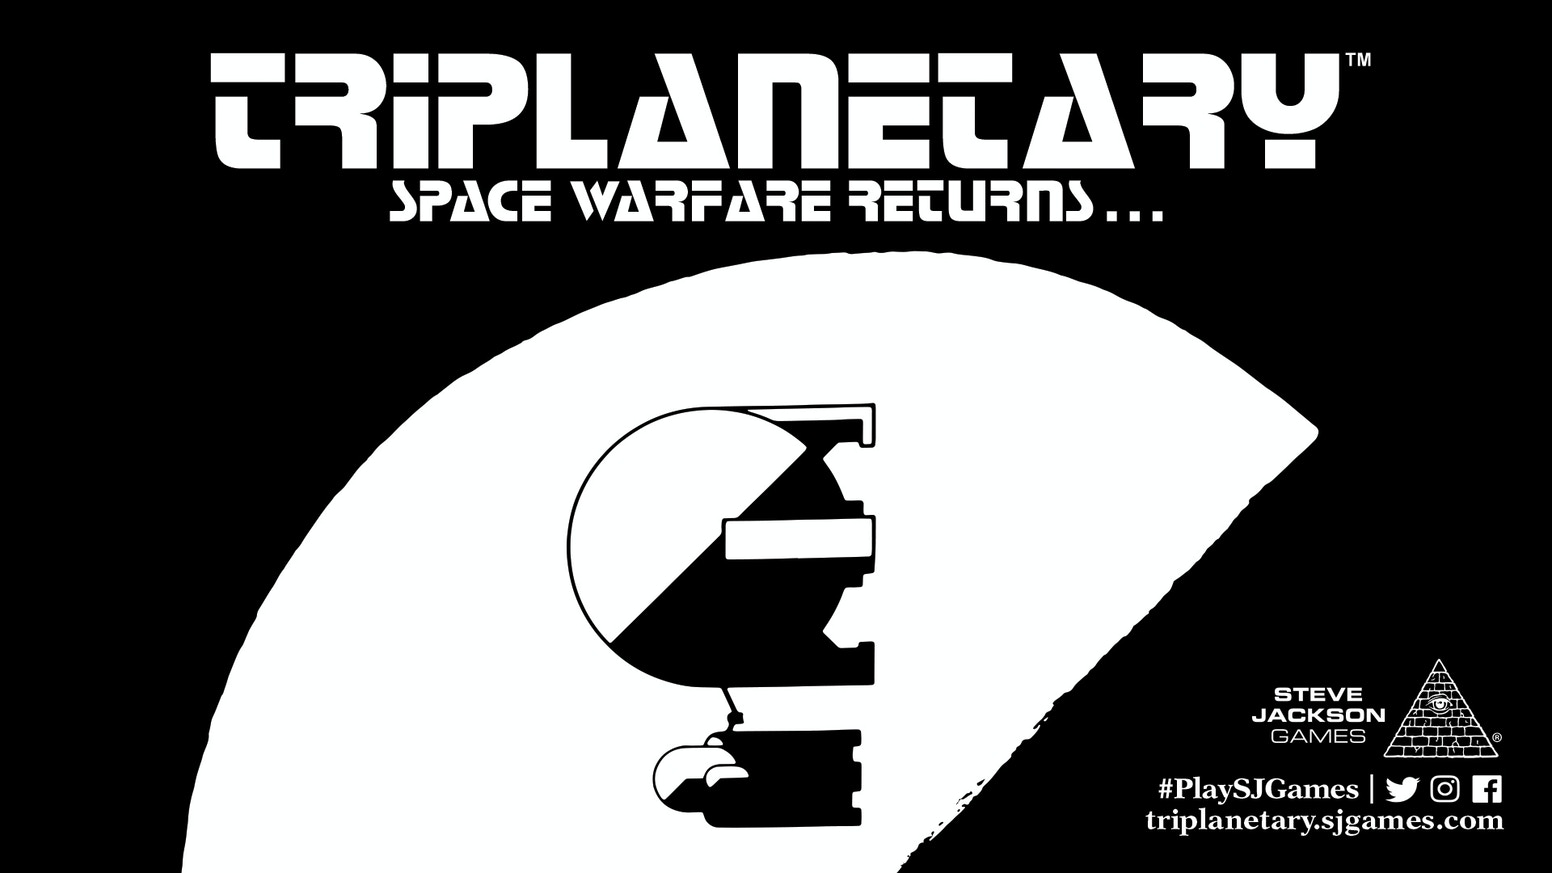 From the dawn of the hobby, a classic space game returns . . . Triplanetary depicts ship-to-ship space combat in the Solar System!